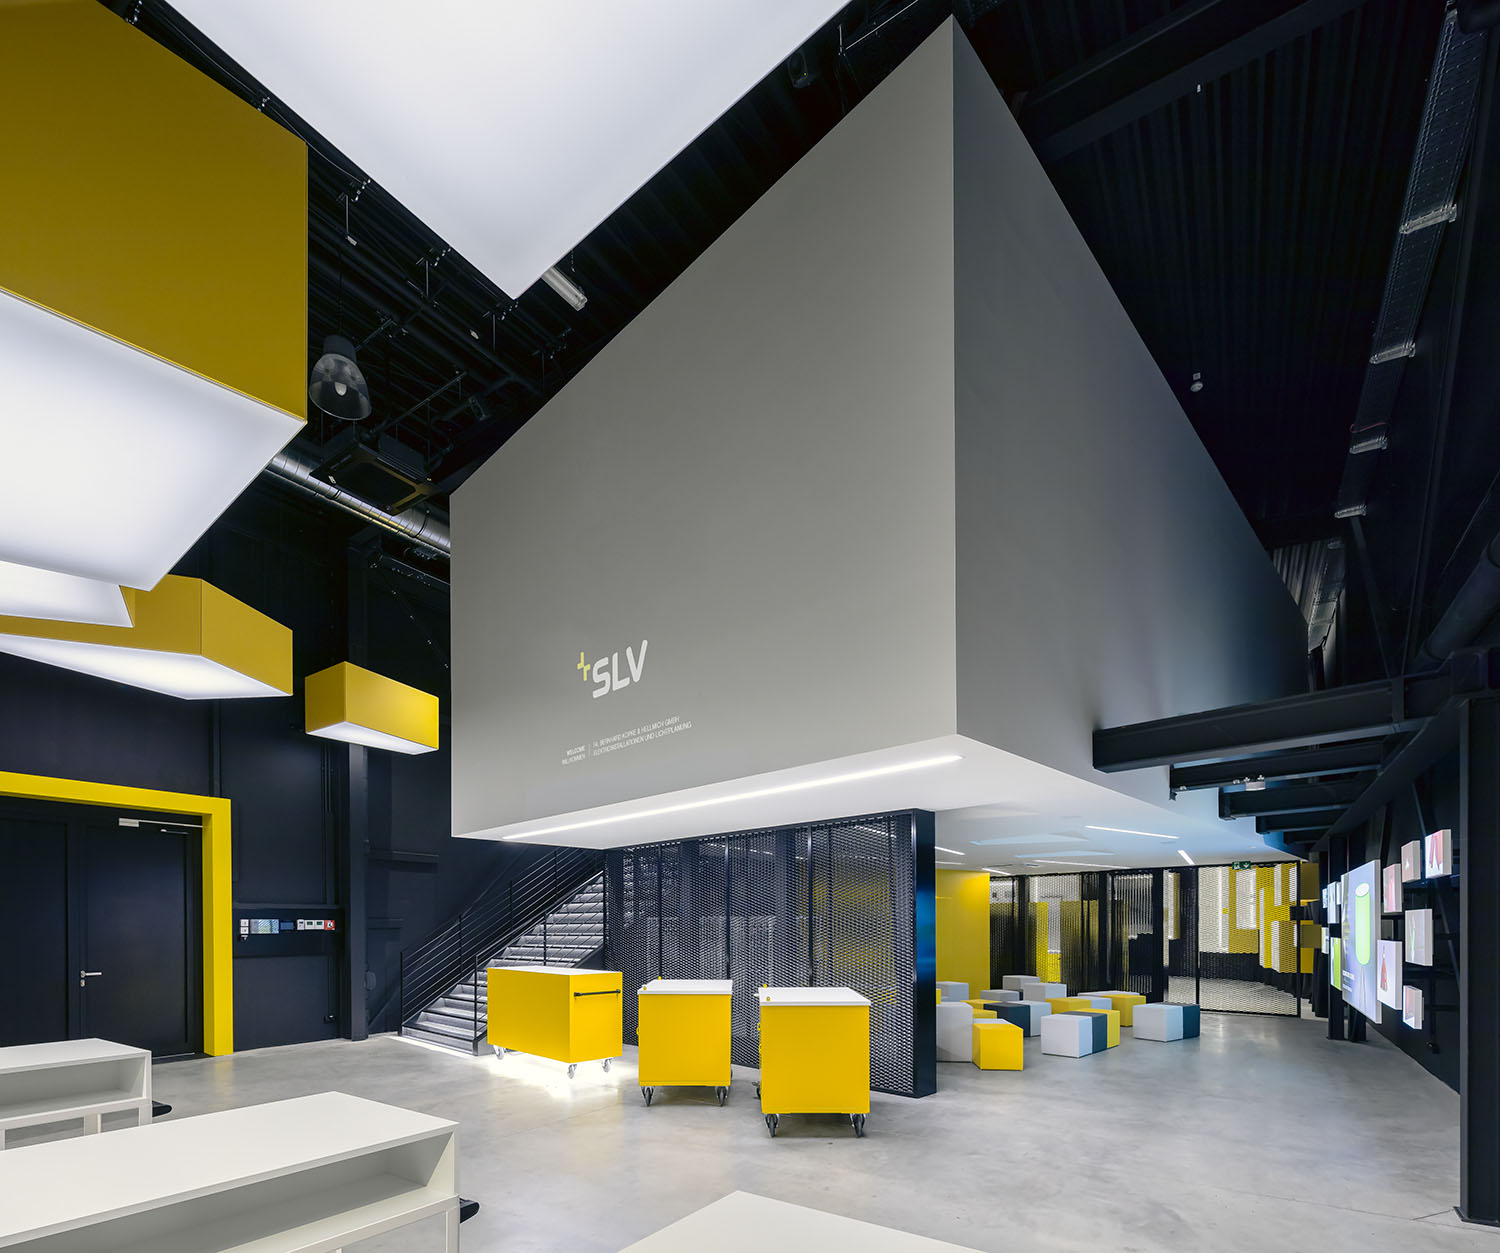 SLV Visitorcenter welcome area. Monochrome design with yellow highligths.